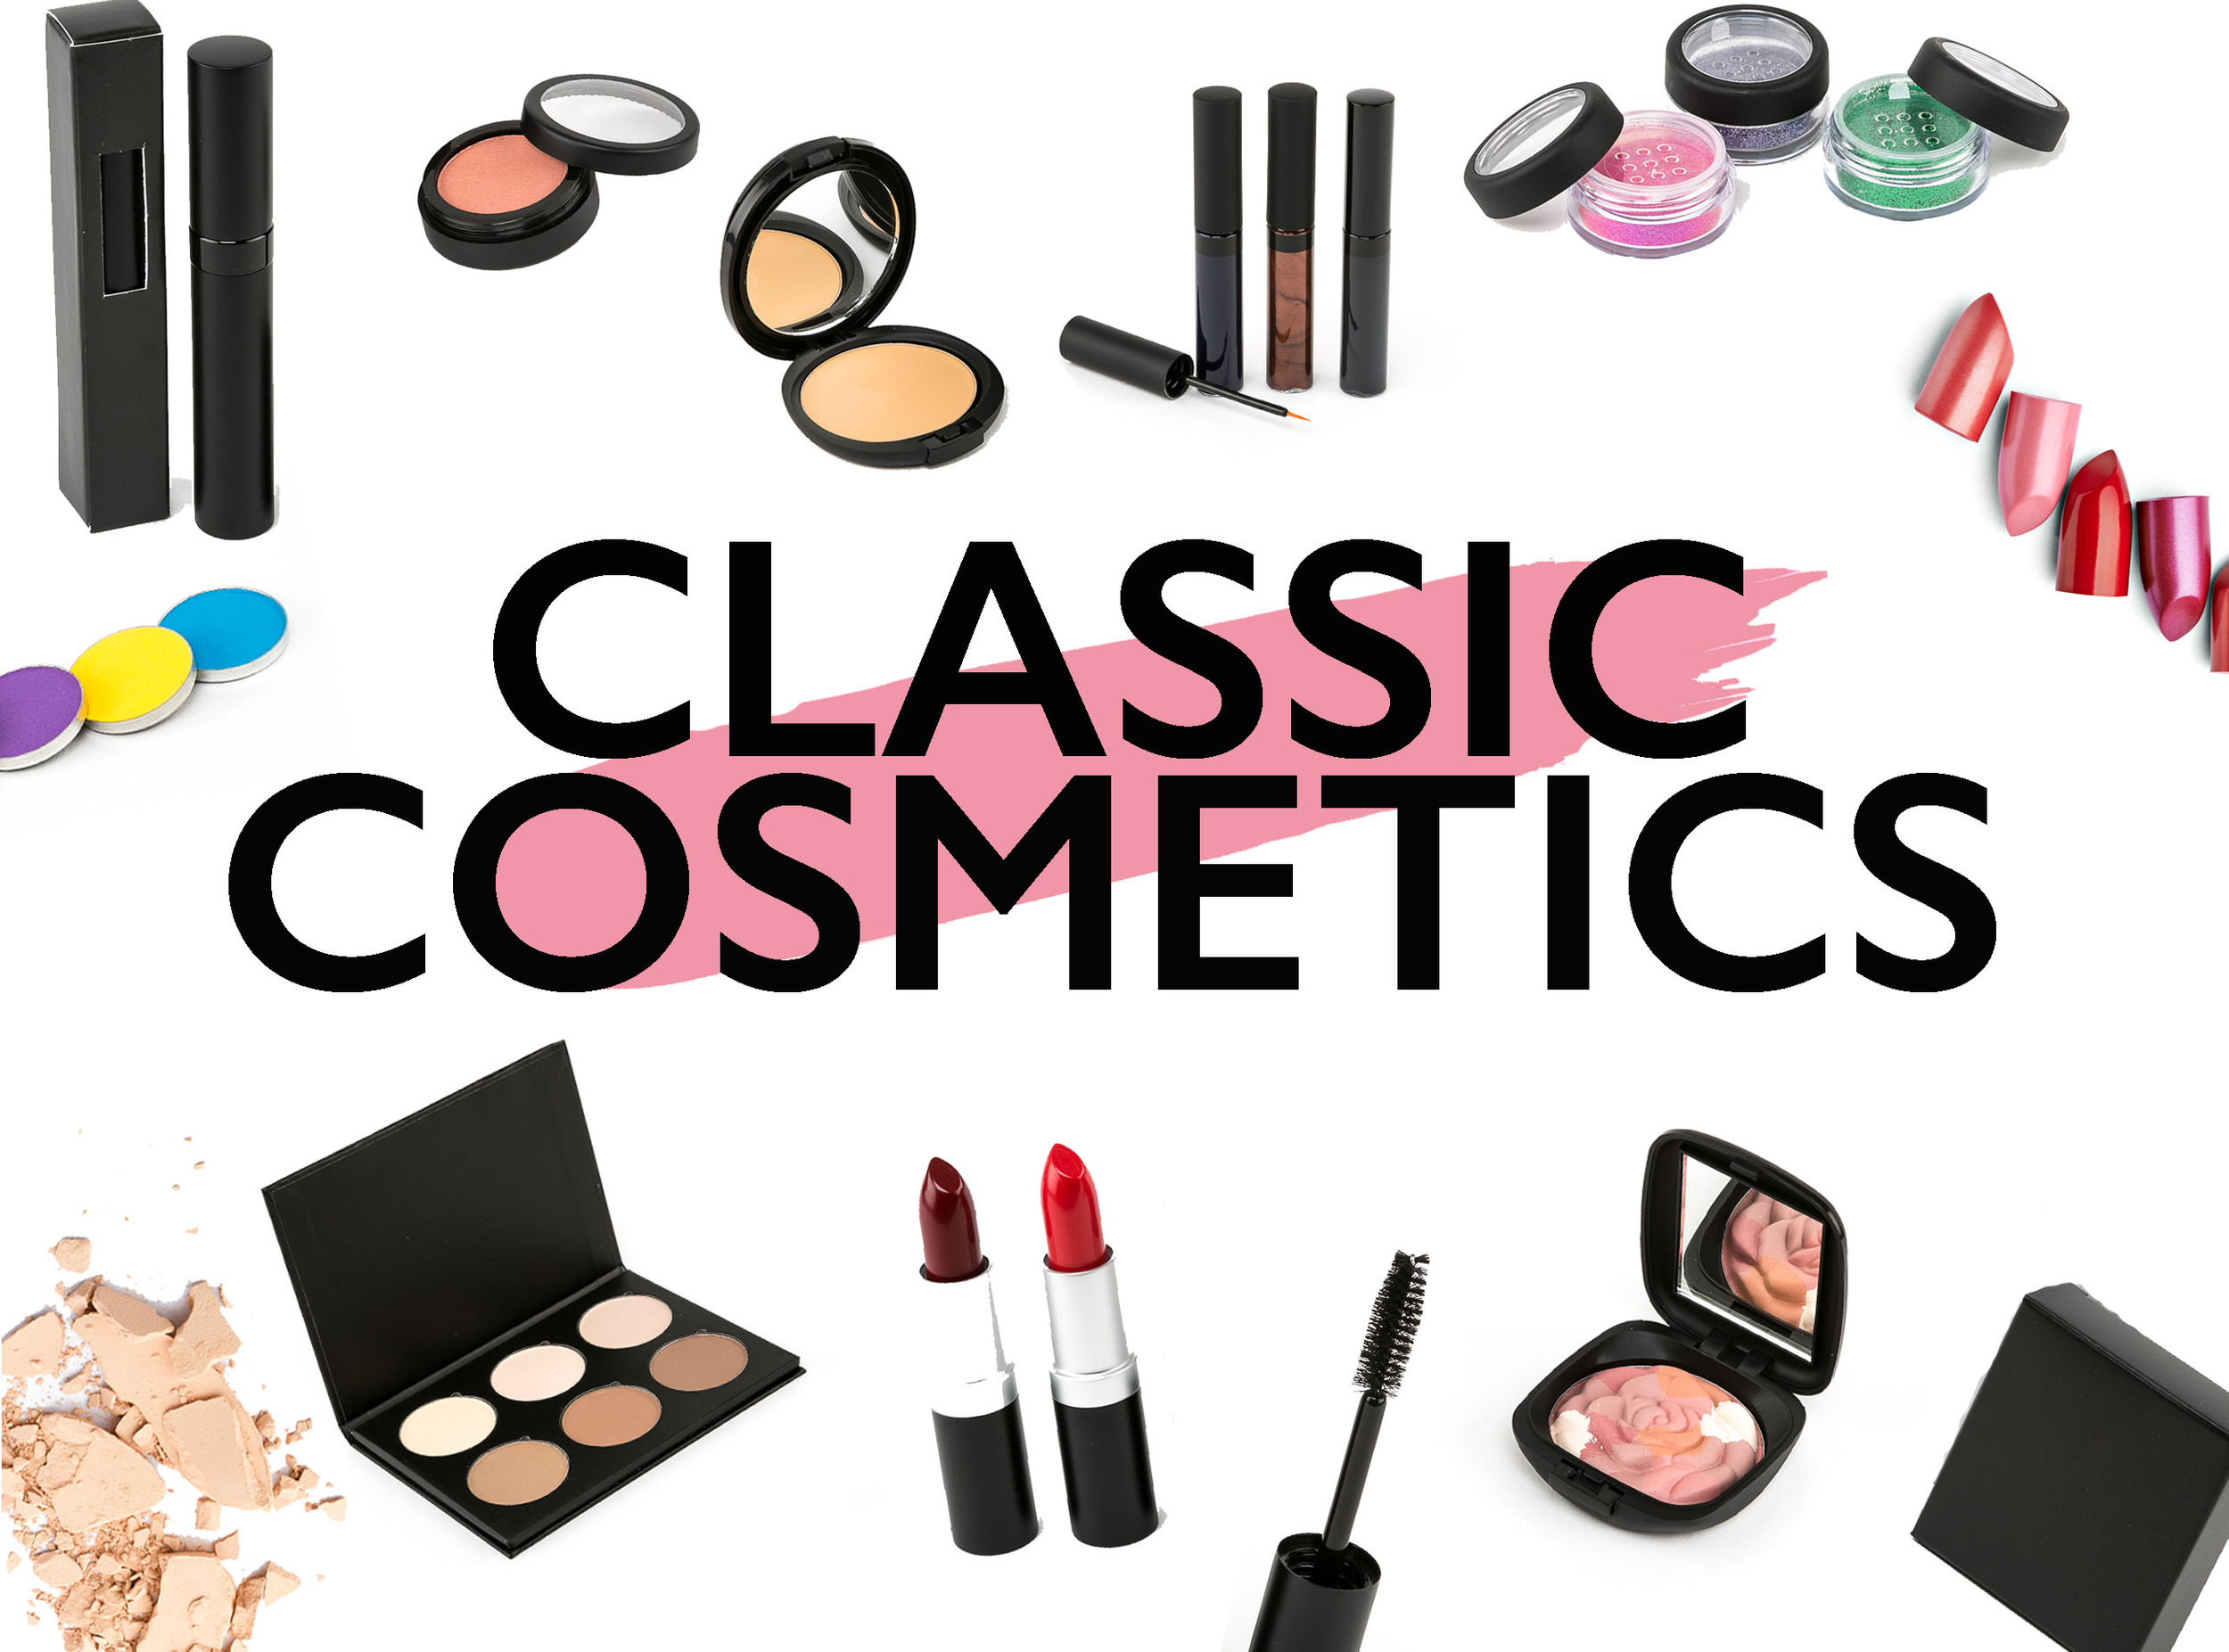 CLICK TO VIEW ALL CLASSIC COSMETICS